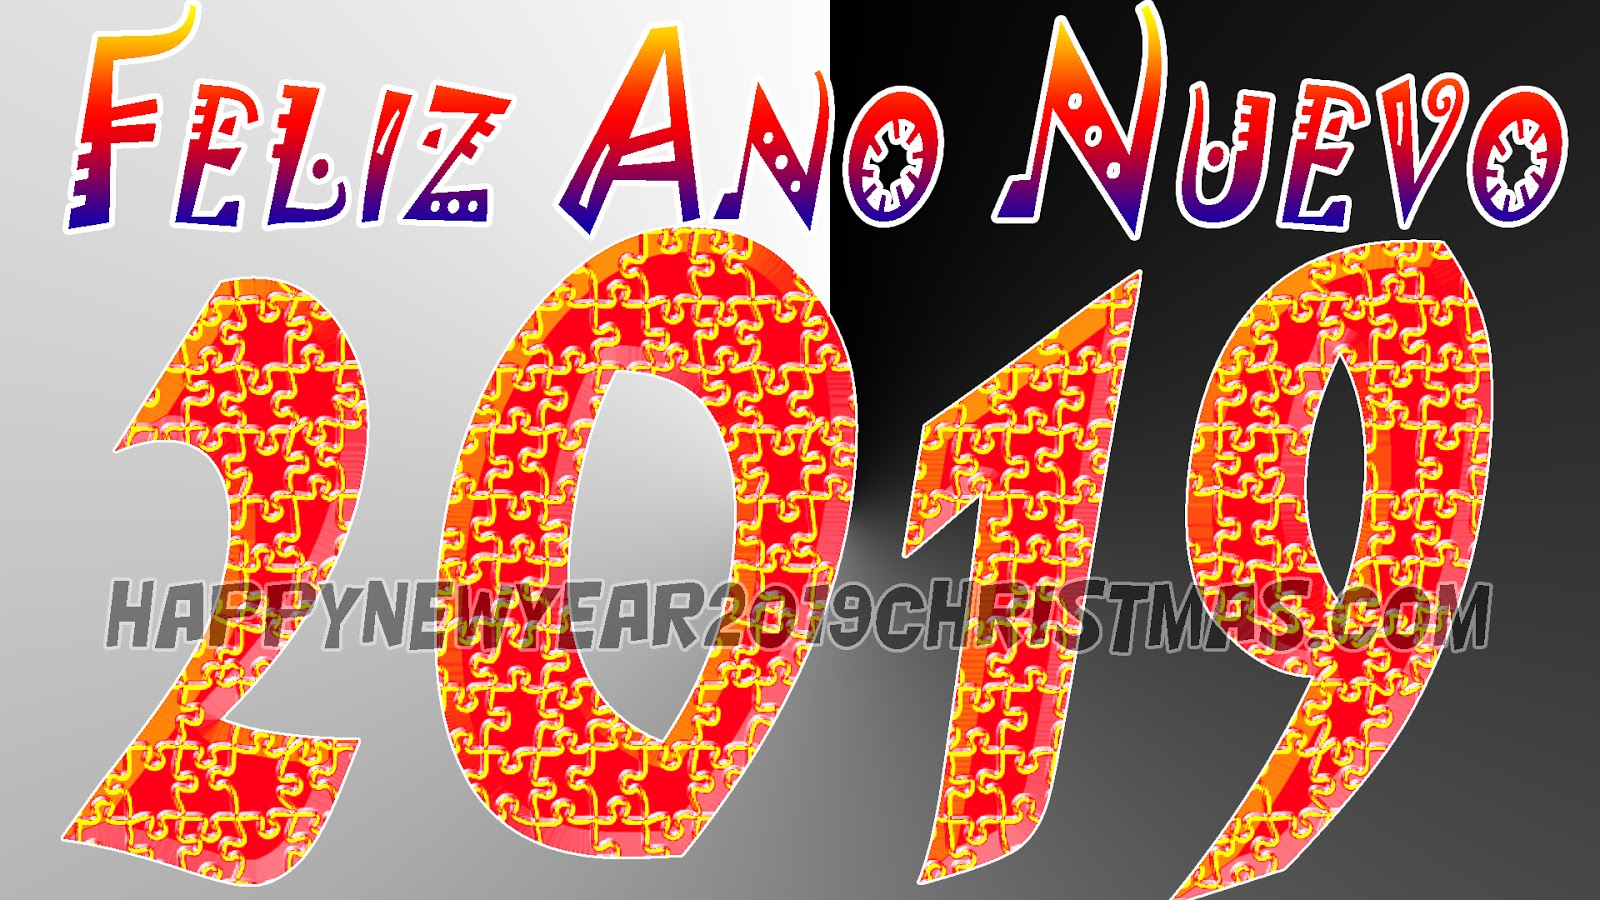 happy new year wishes in spanish happy new year images jpg 1600x900 spanish new year messages